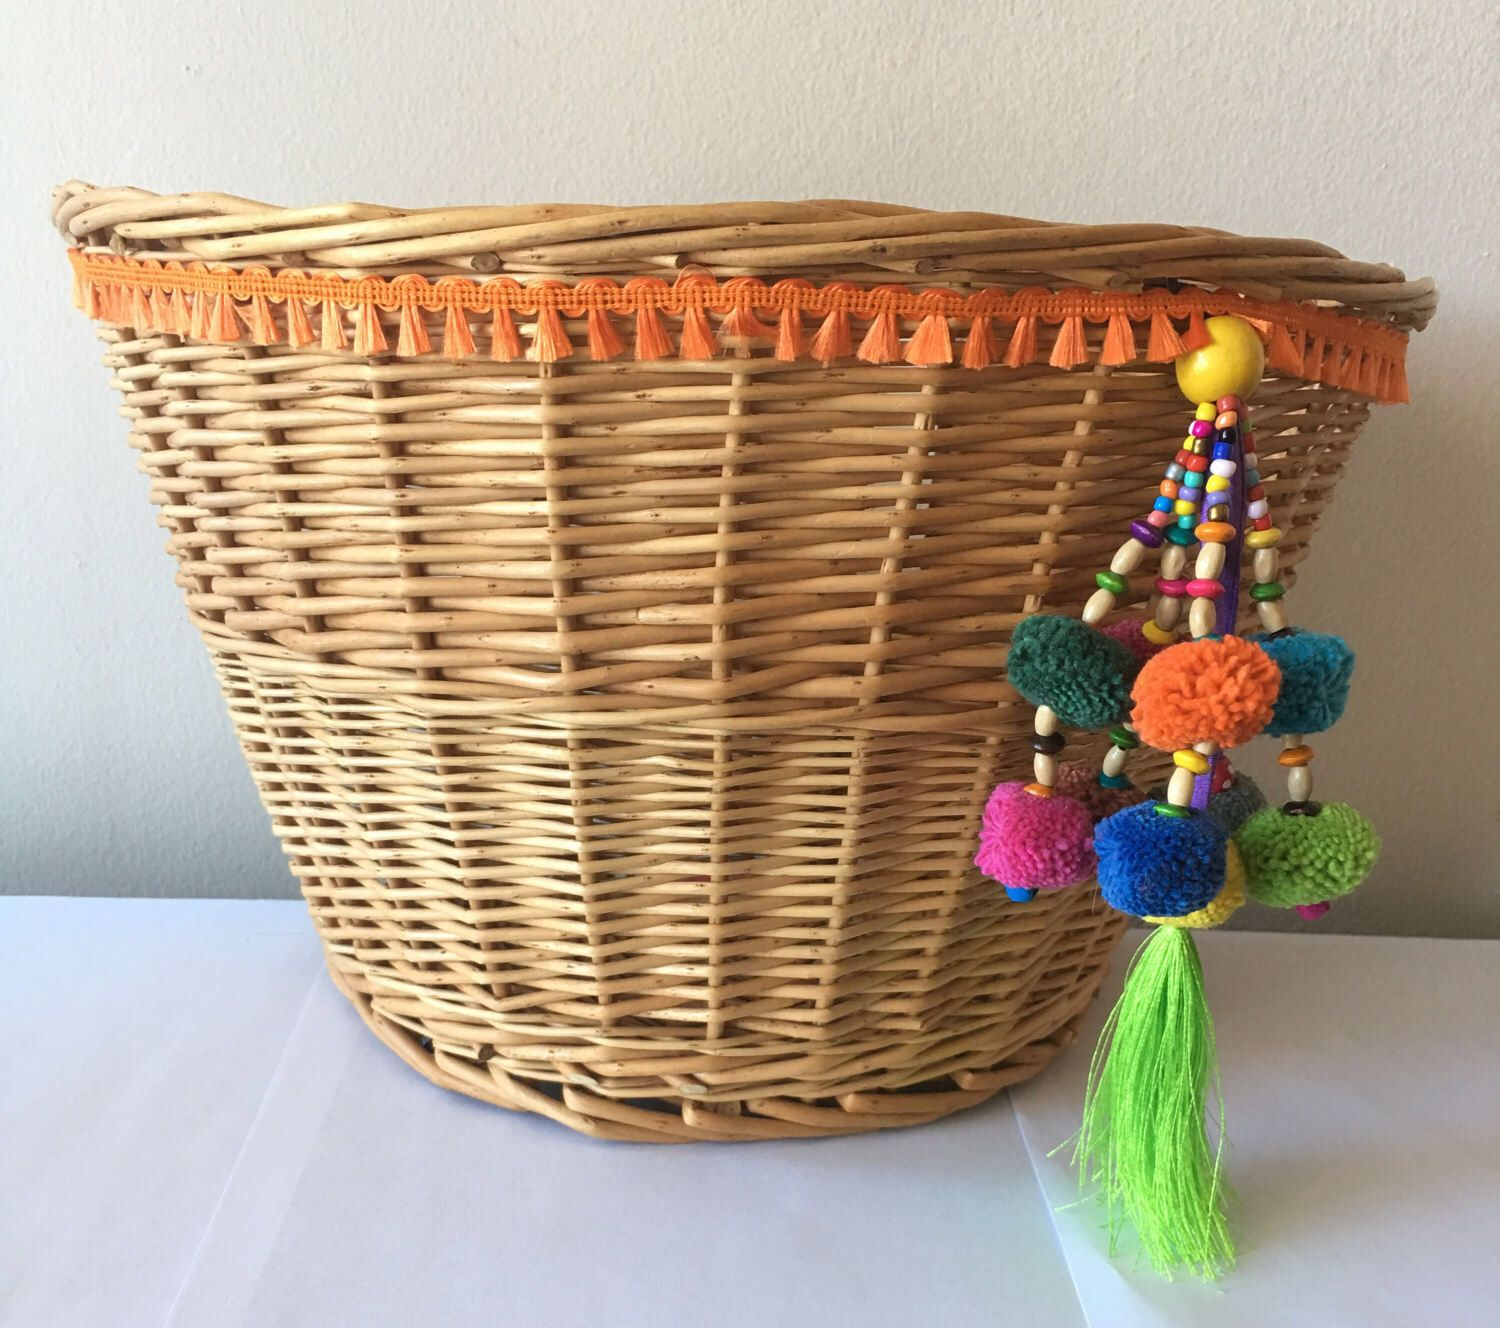 #boho #bicyclebaskets A personal favorite from my Etsy shop https://www.etsy.com/listing/521481161/wicker-bike-basket